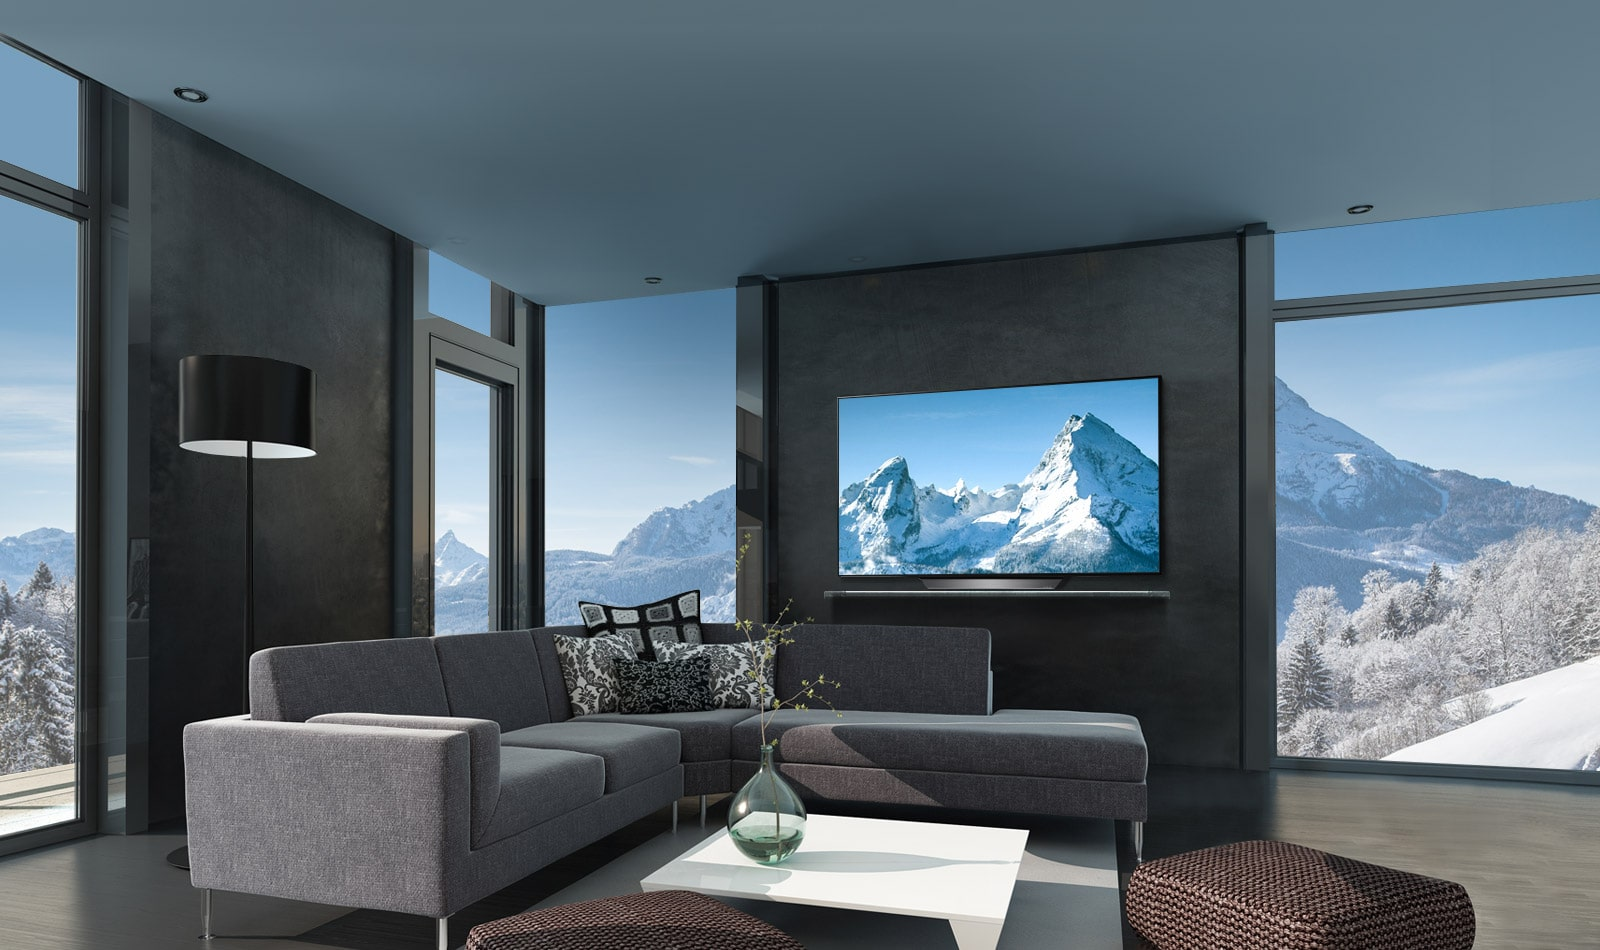 LG TV's - A seamless blend with your décor